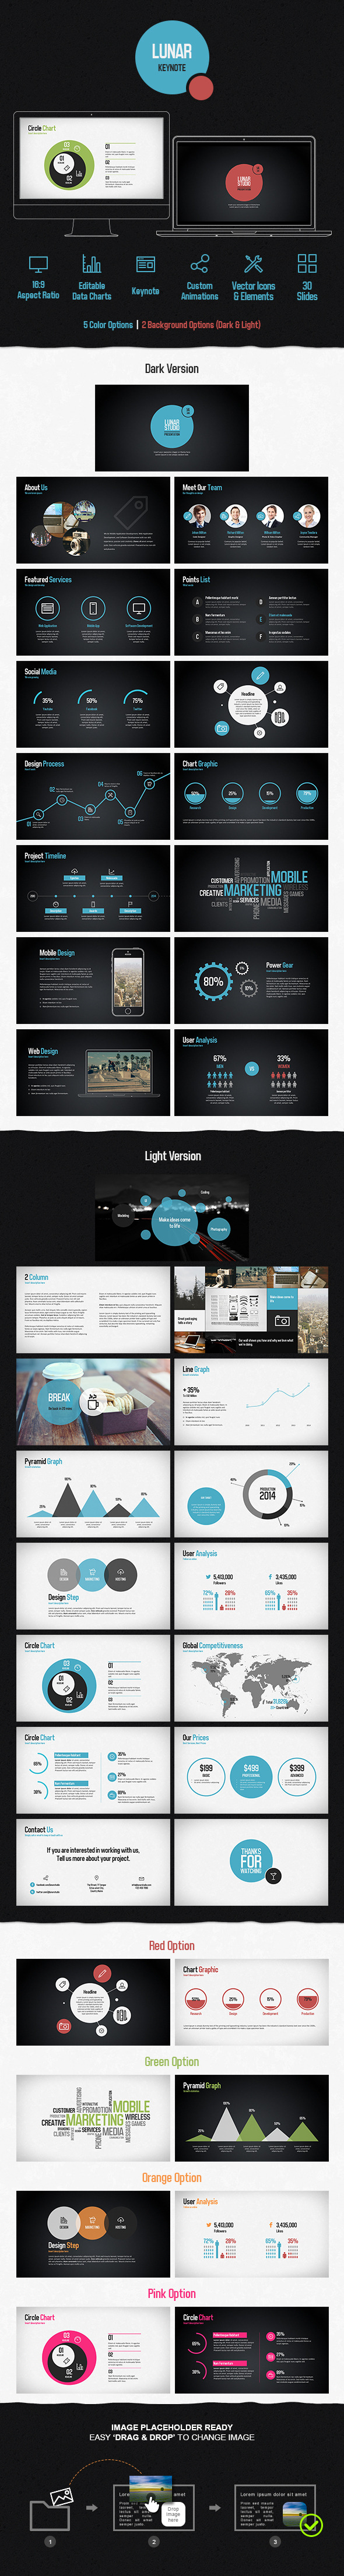 Lunar Keynote Presentation Template - Creative Keynote Templates